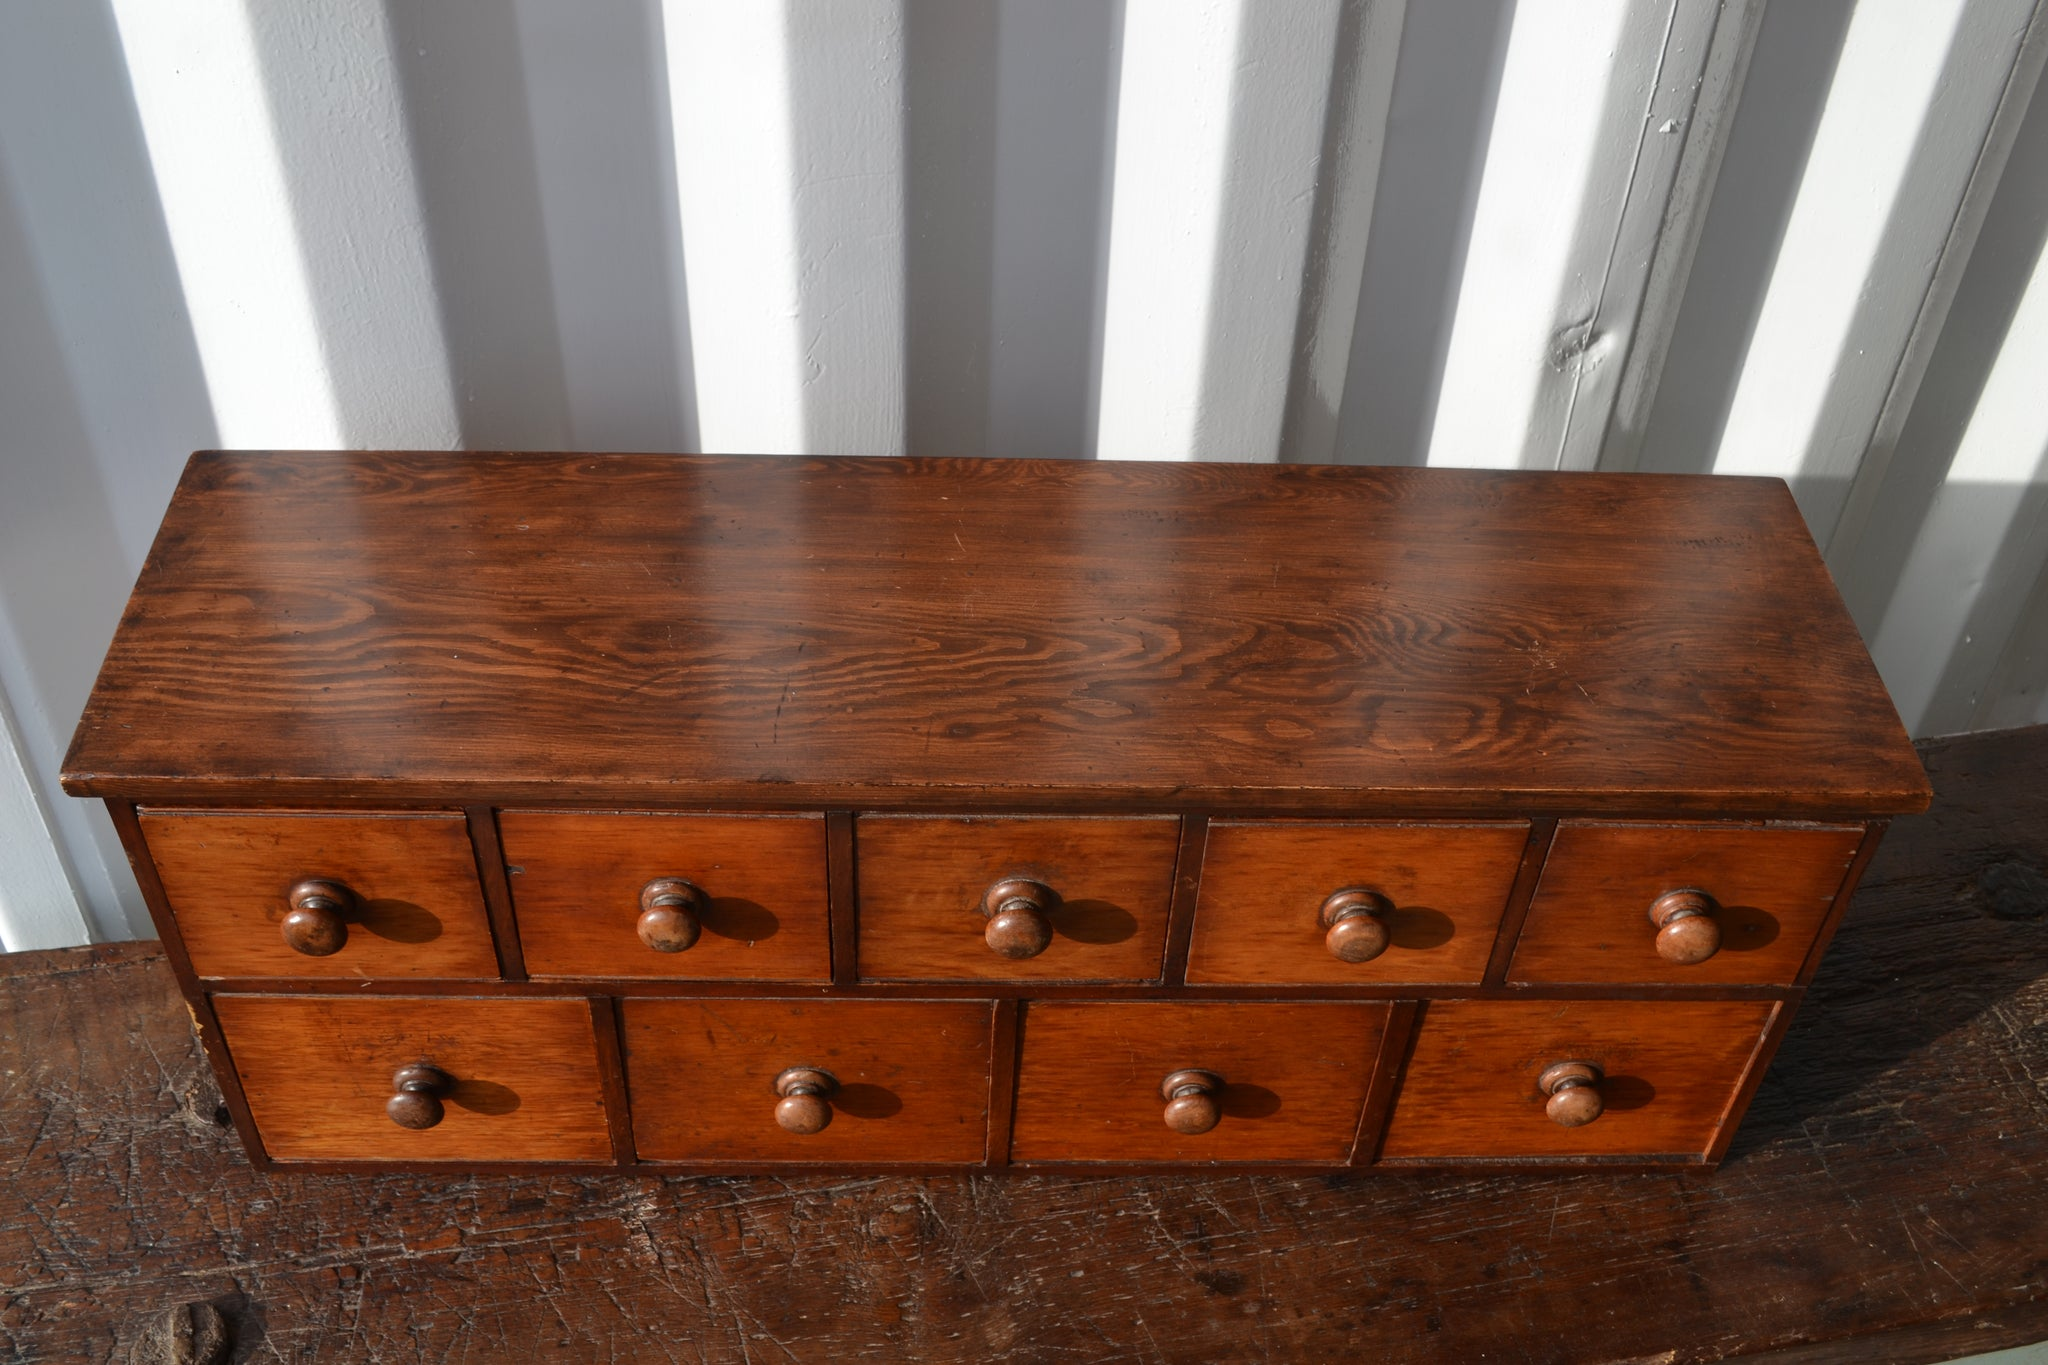 A small bank of cedar apothecary drawers